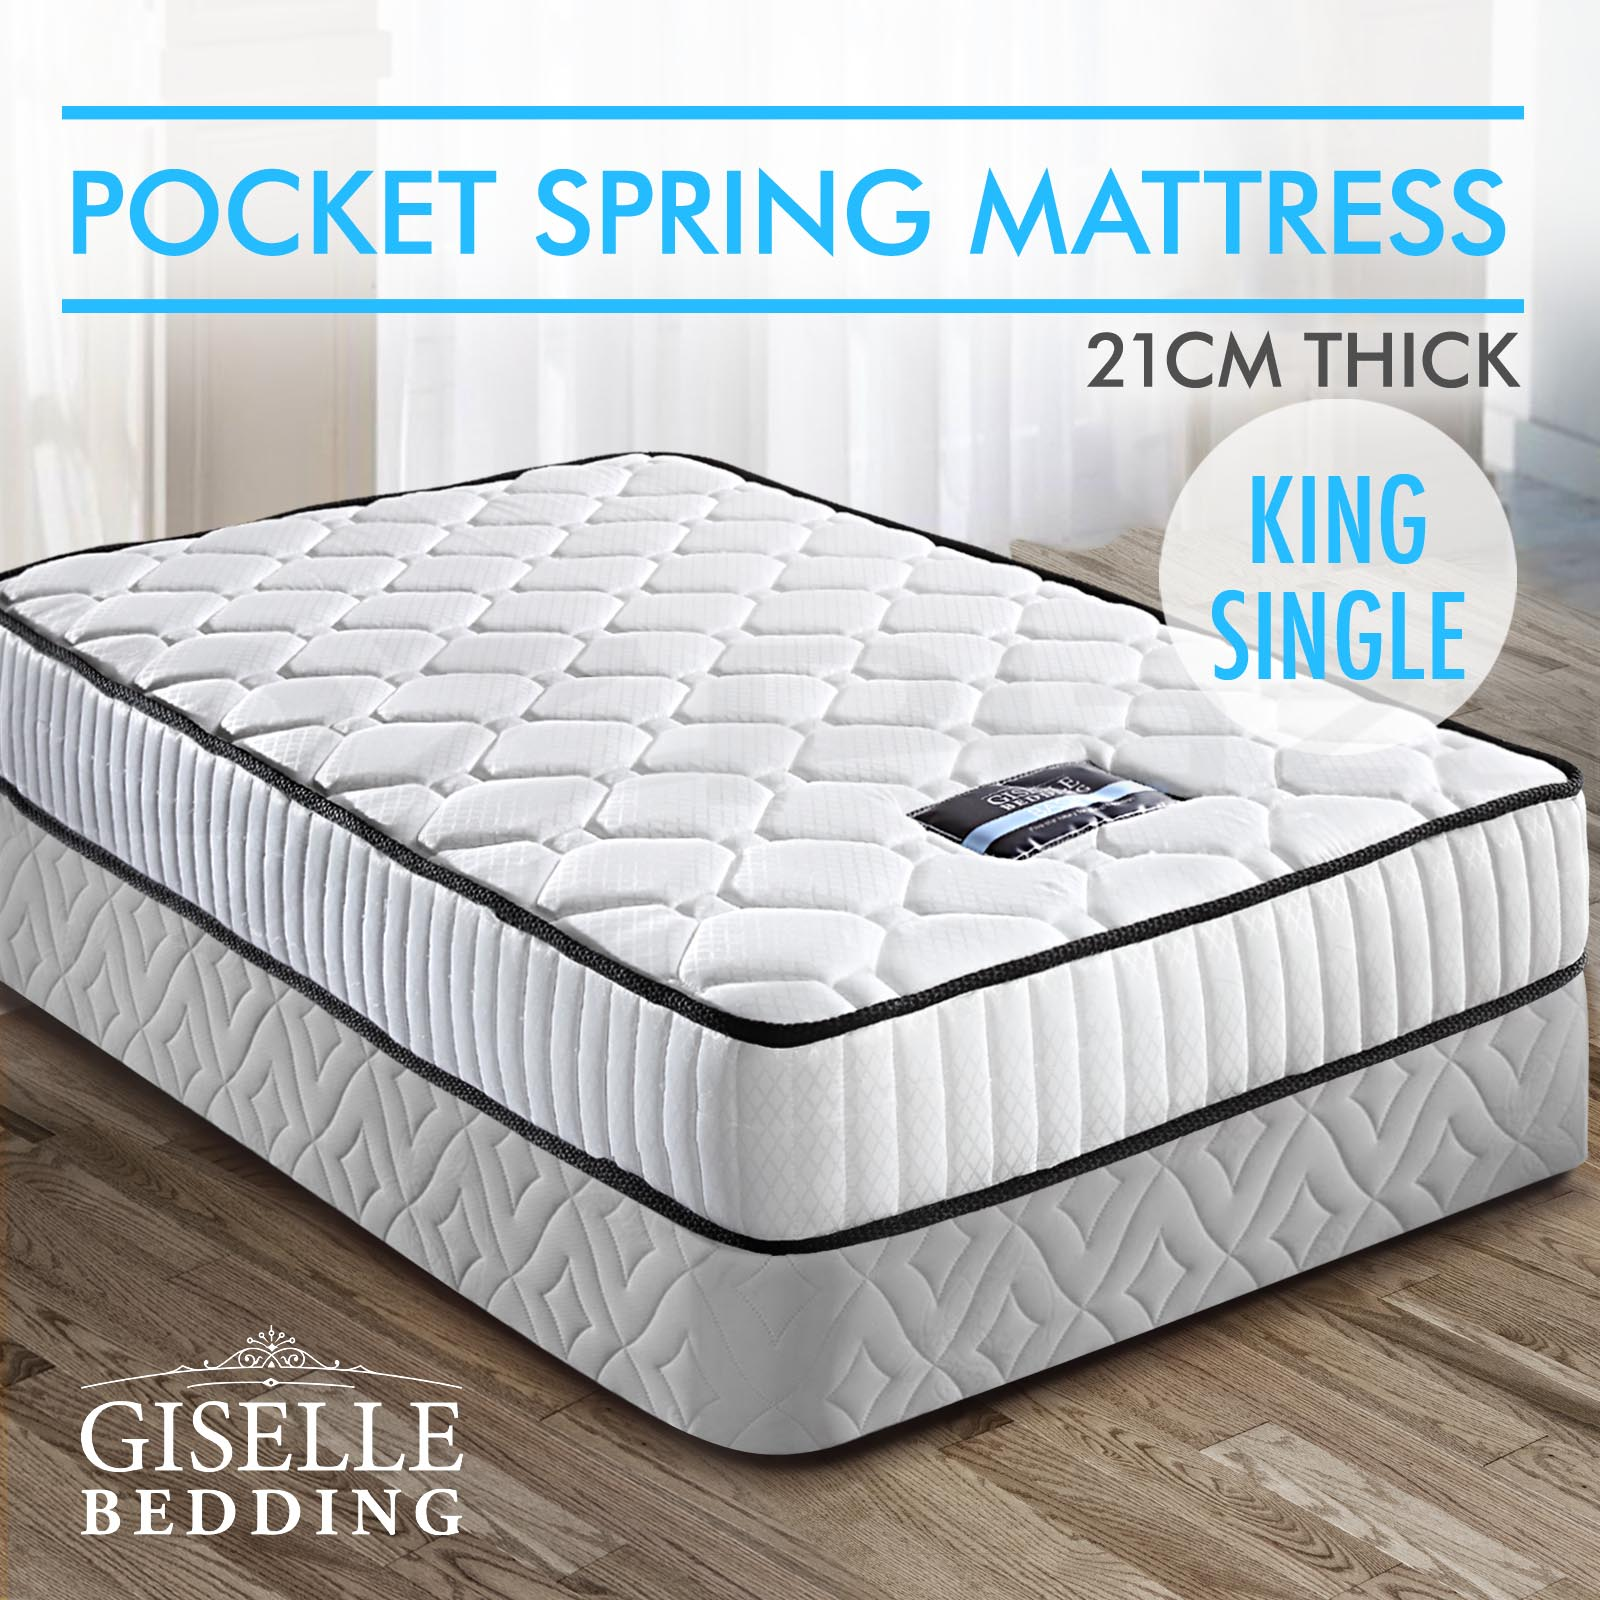 Size Of A King Single Bed Queen Double King Single Mattress Bed Size Pocket Spring